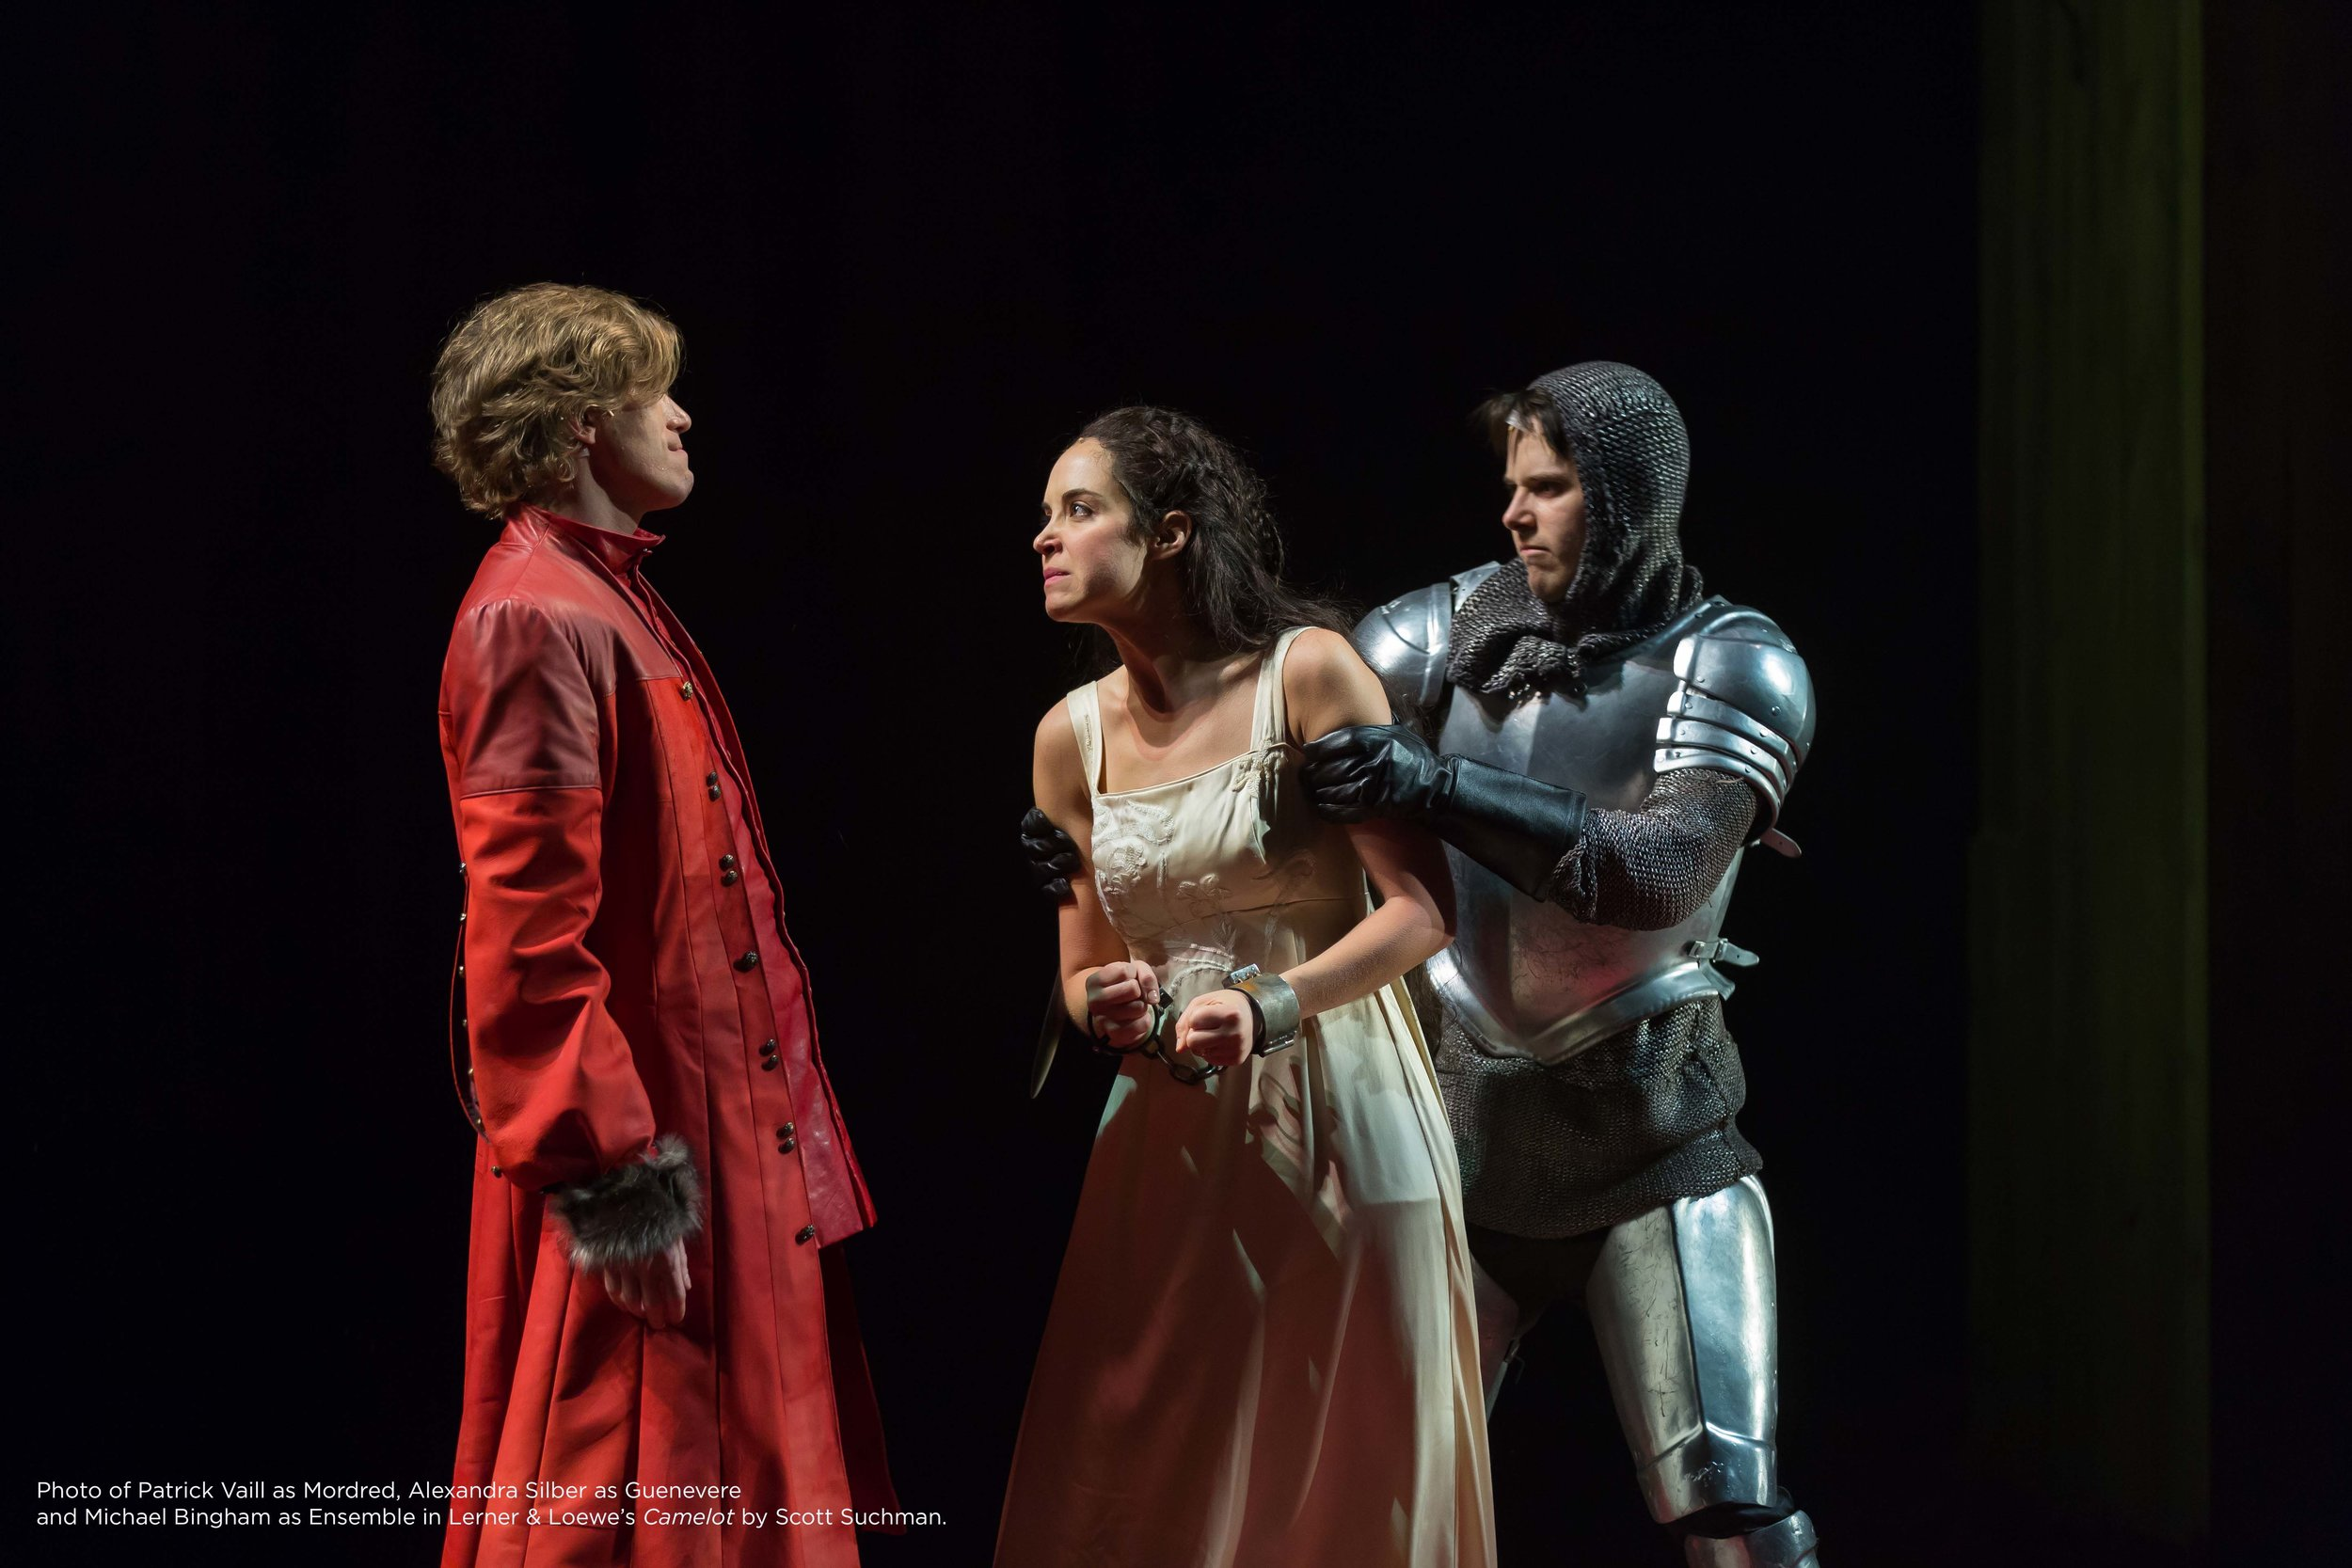 """Alexandra Silber in Lerner & Lowe's """"Camelot"""" at Shakespeare Theatre Company in Washington DC, Photo Credit:Scott Suchman"""